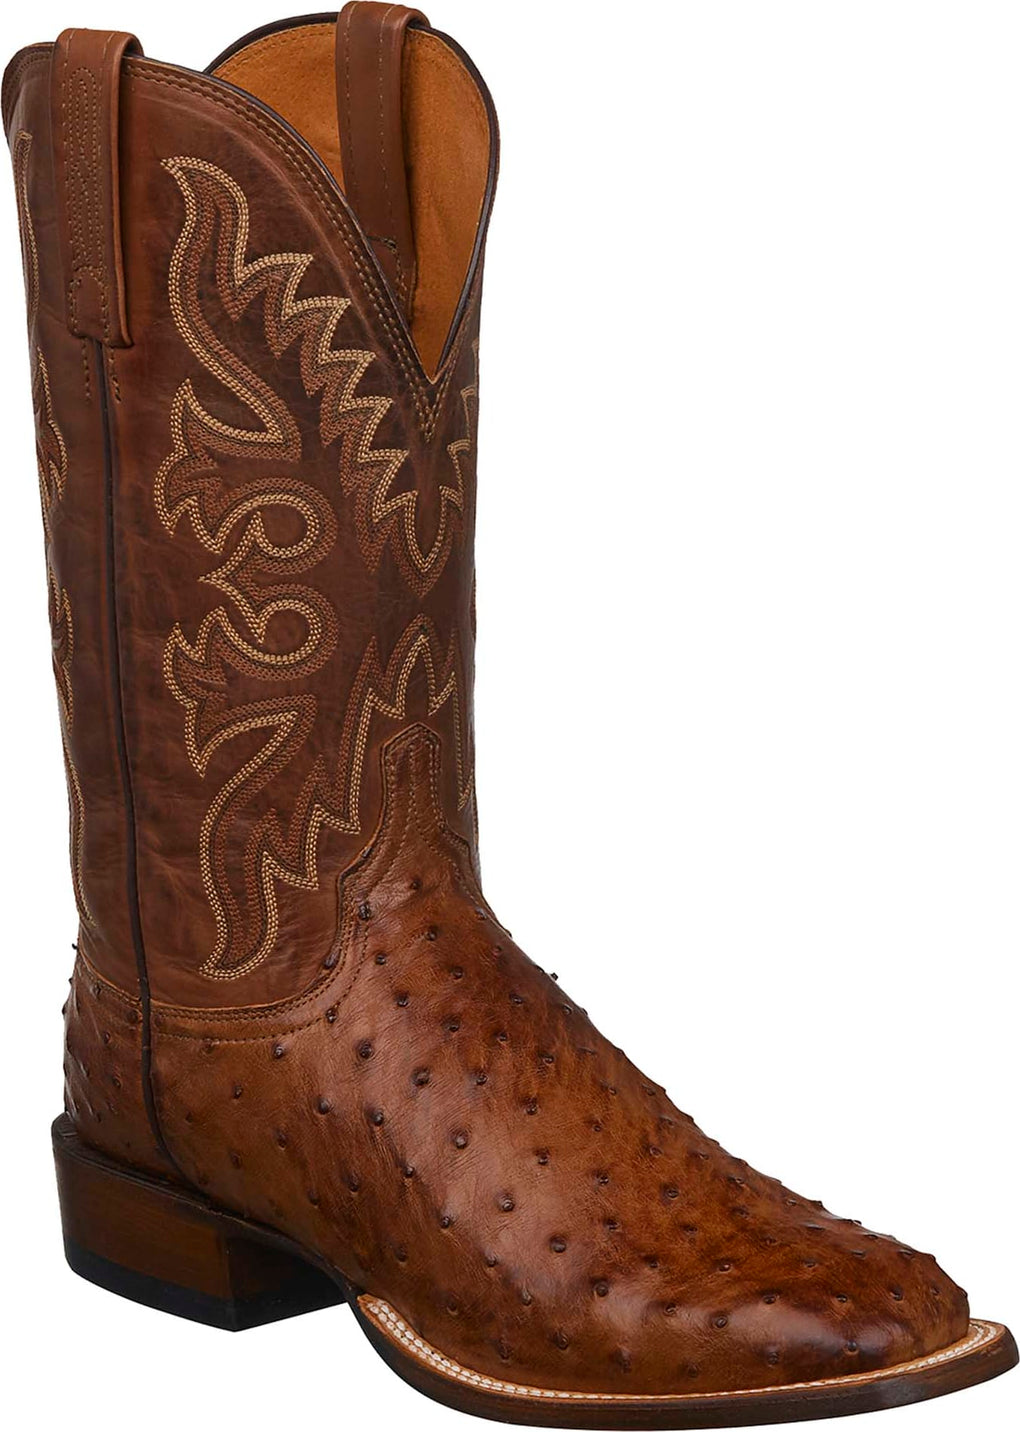 MEN'S LUCCHESE HARMON - BARNWOOD BURNISHED FULL QUILL OSTRICH BOOTS - El Toro Boots